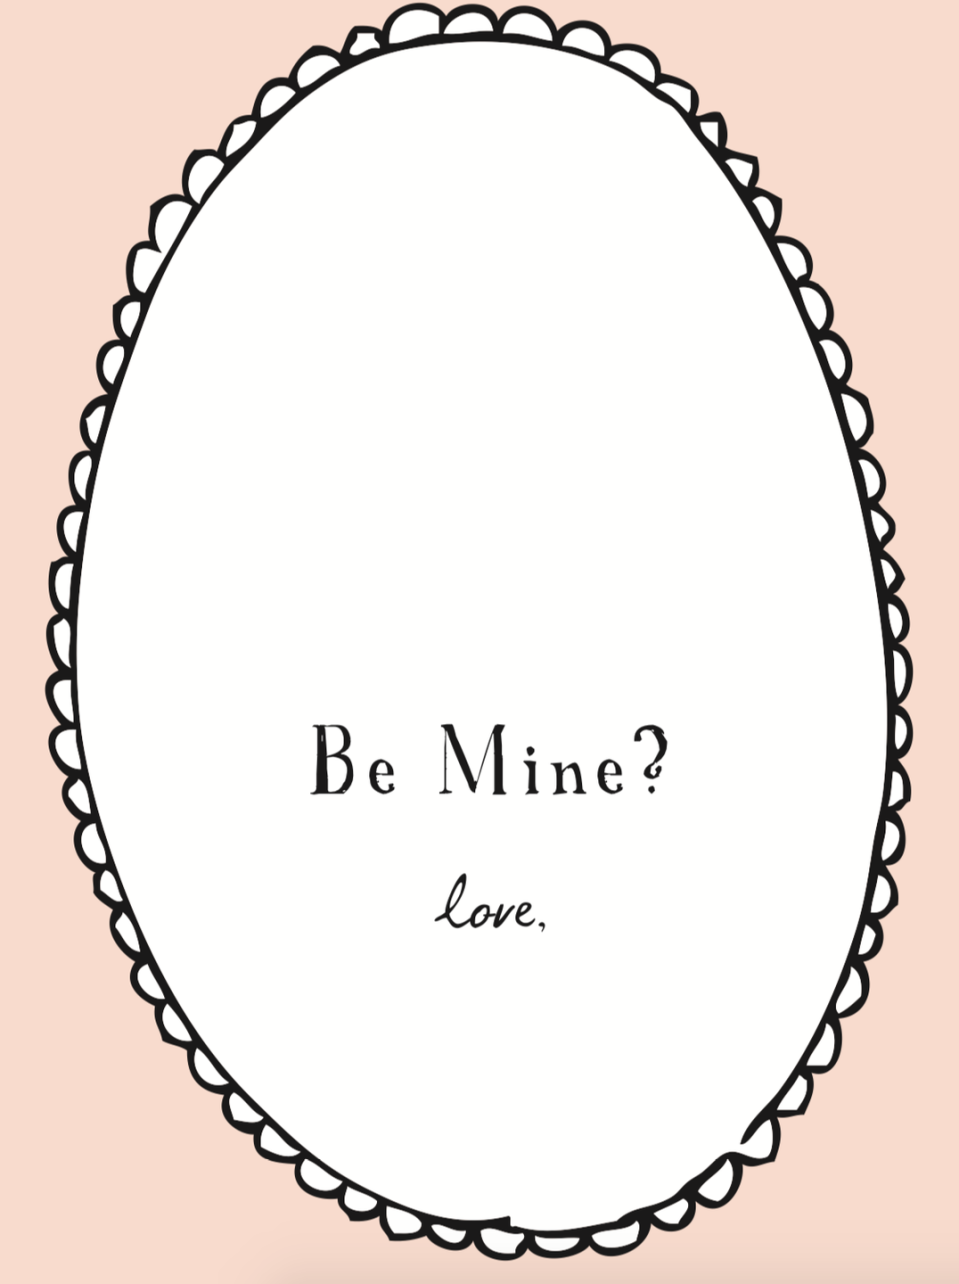 """<p>Get all the credit for the DIY… with an assist from a free printable! Press two overlapping fingerprints onto these sweet printable cards to give them your own personalized heart-shaped stamp.</p><p><a href=""""http://raeannkelly.com/d-y-printable-valentines-repost-armommy/"""" rel=""""nofollow noopener"""" target=""""_blank"""" data-ylk=""""slk:Get the tutorial at Rae Ann Kelly »"""" class=""""link rapid-noclick-resp""""><em>Get the tutorial at Rae Ann Kelly </em><em>»</em></a></p>"""